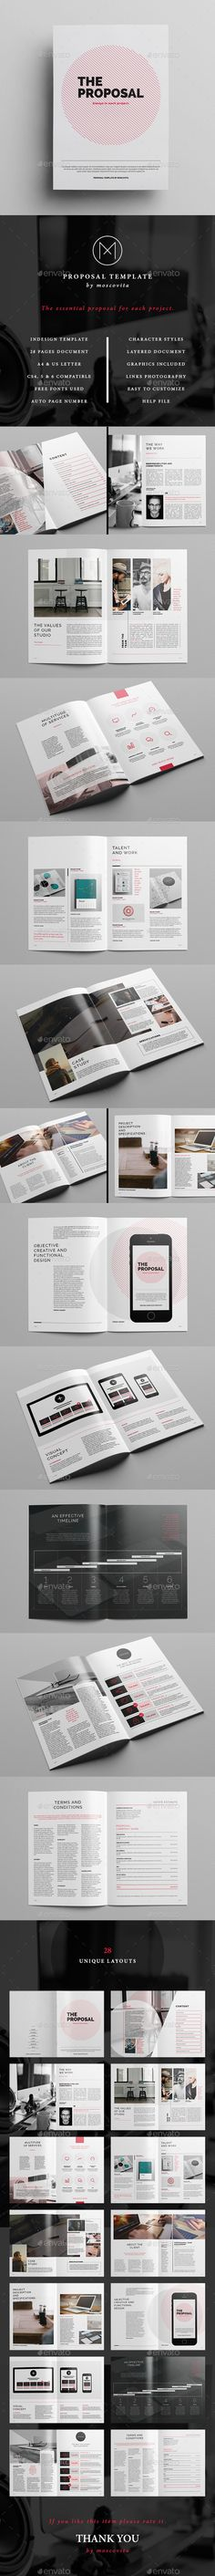 10 best Tender \ Proposal Layouts images on Pinterest Bespoke - proposal layouts